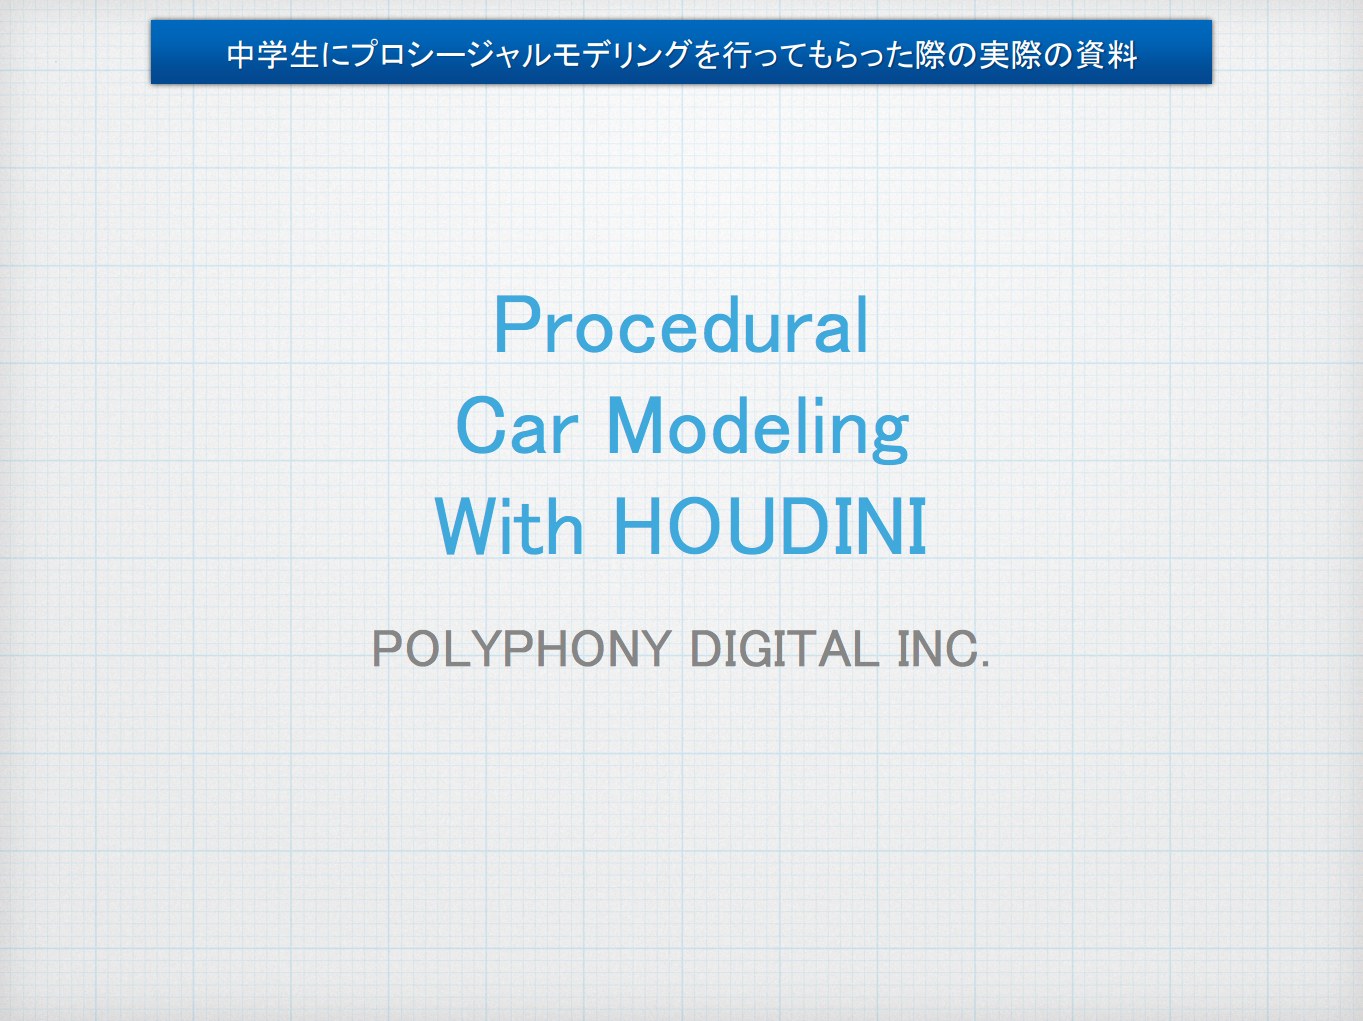 Polyphony Digital Is Experimenting With Procedurally